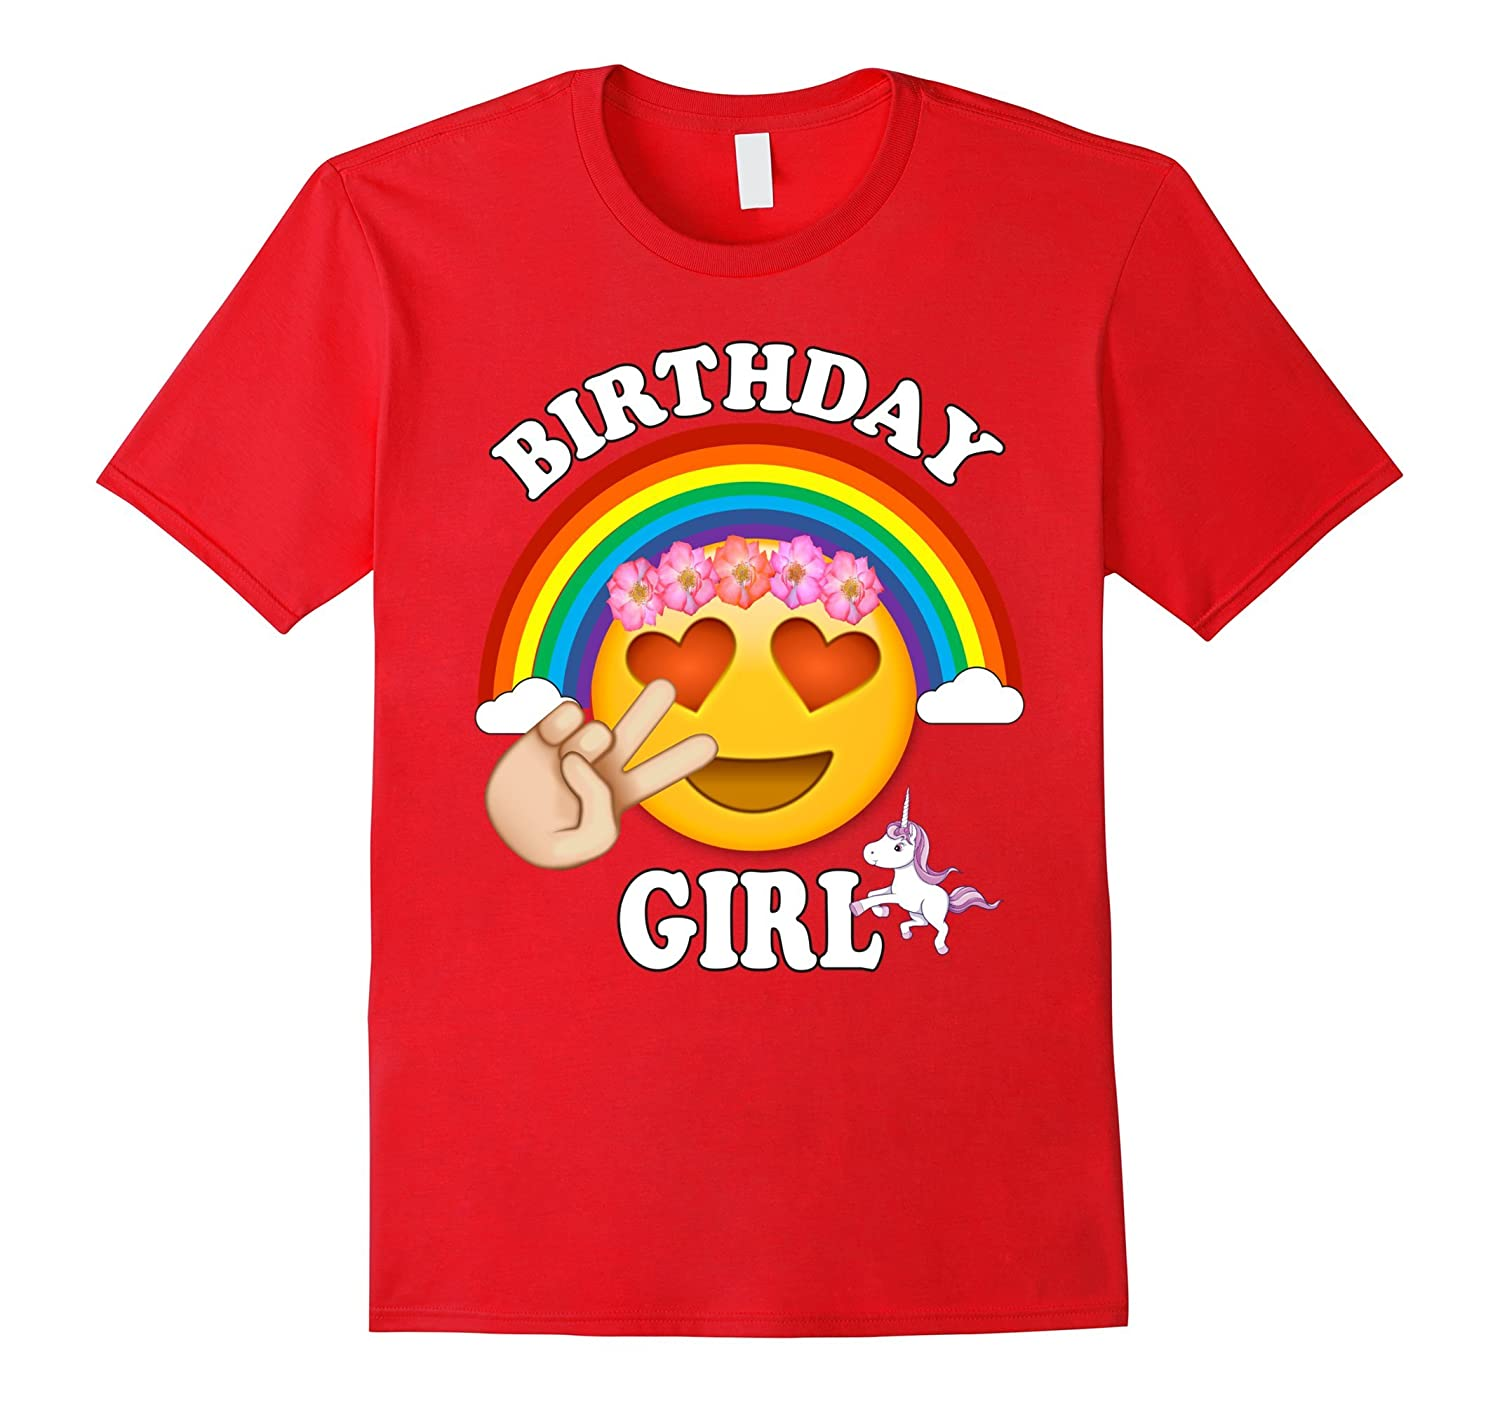 Emoji Birthday Shirt For Girls Unicorn Rainbow Cute-ah my shirt one gift